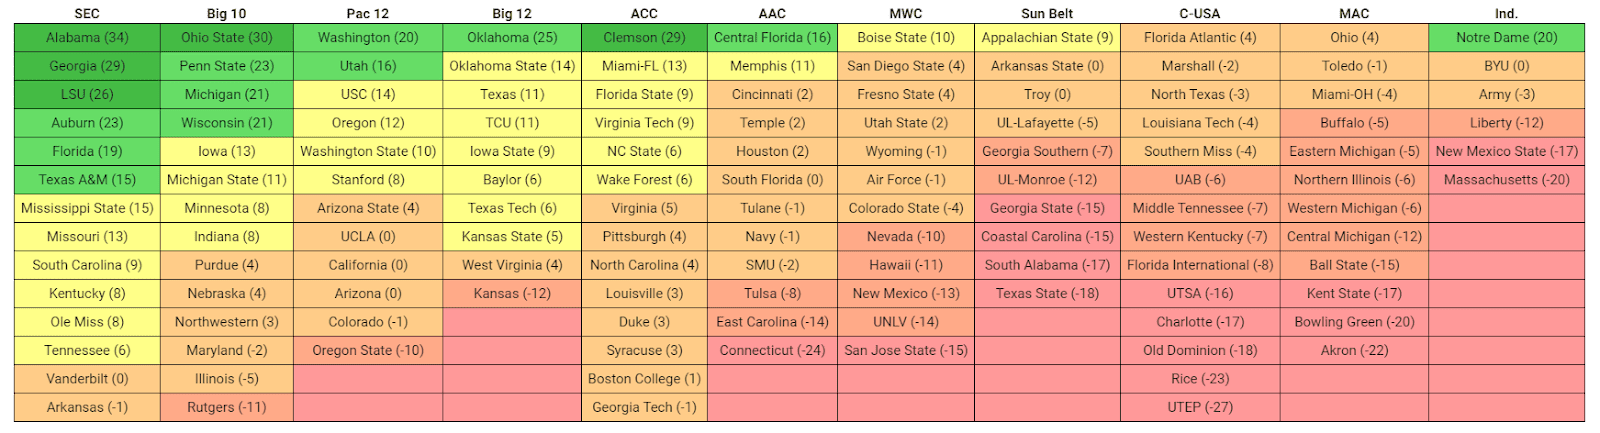 comparing college football conferences